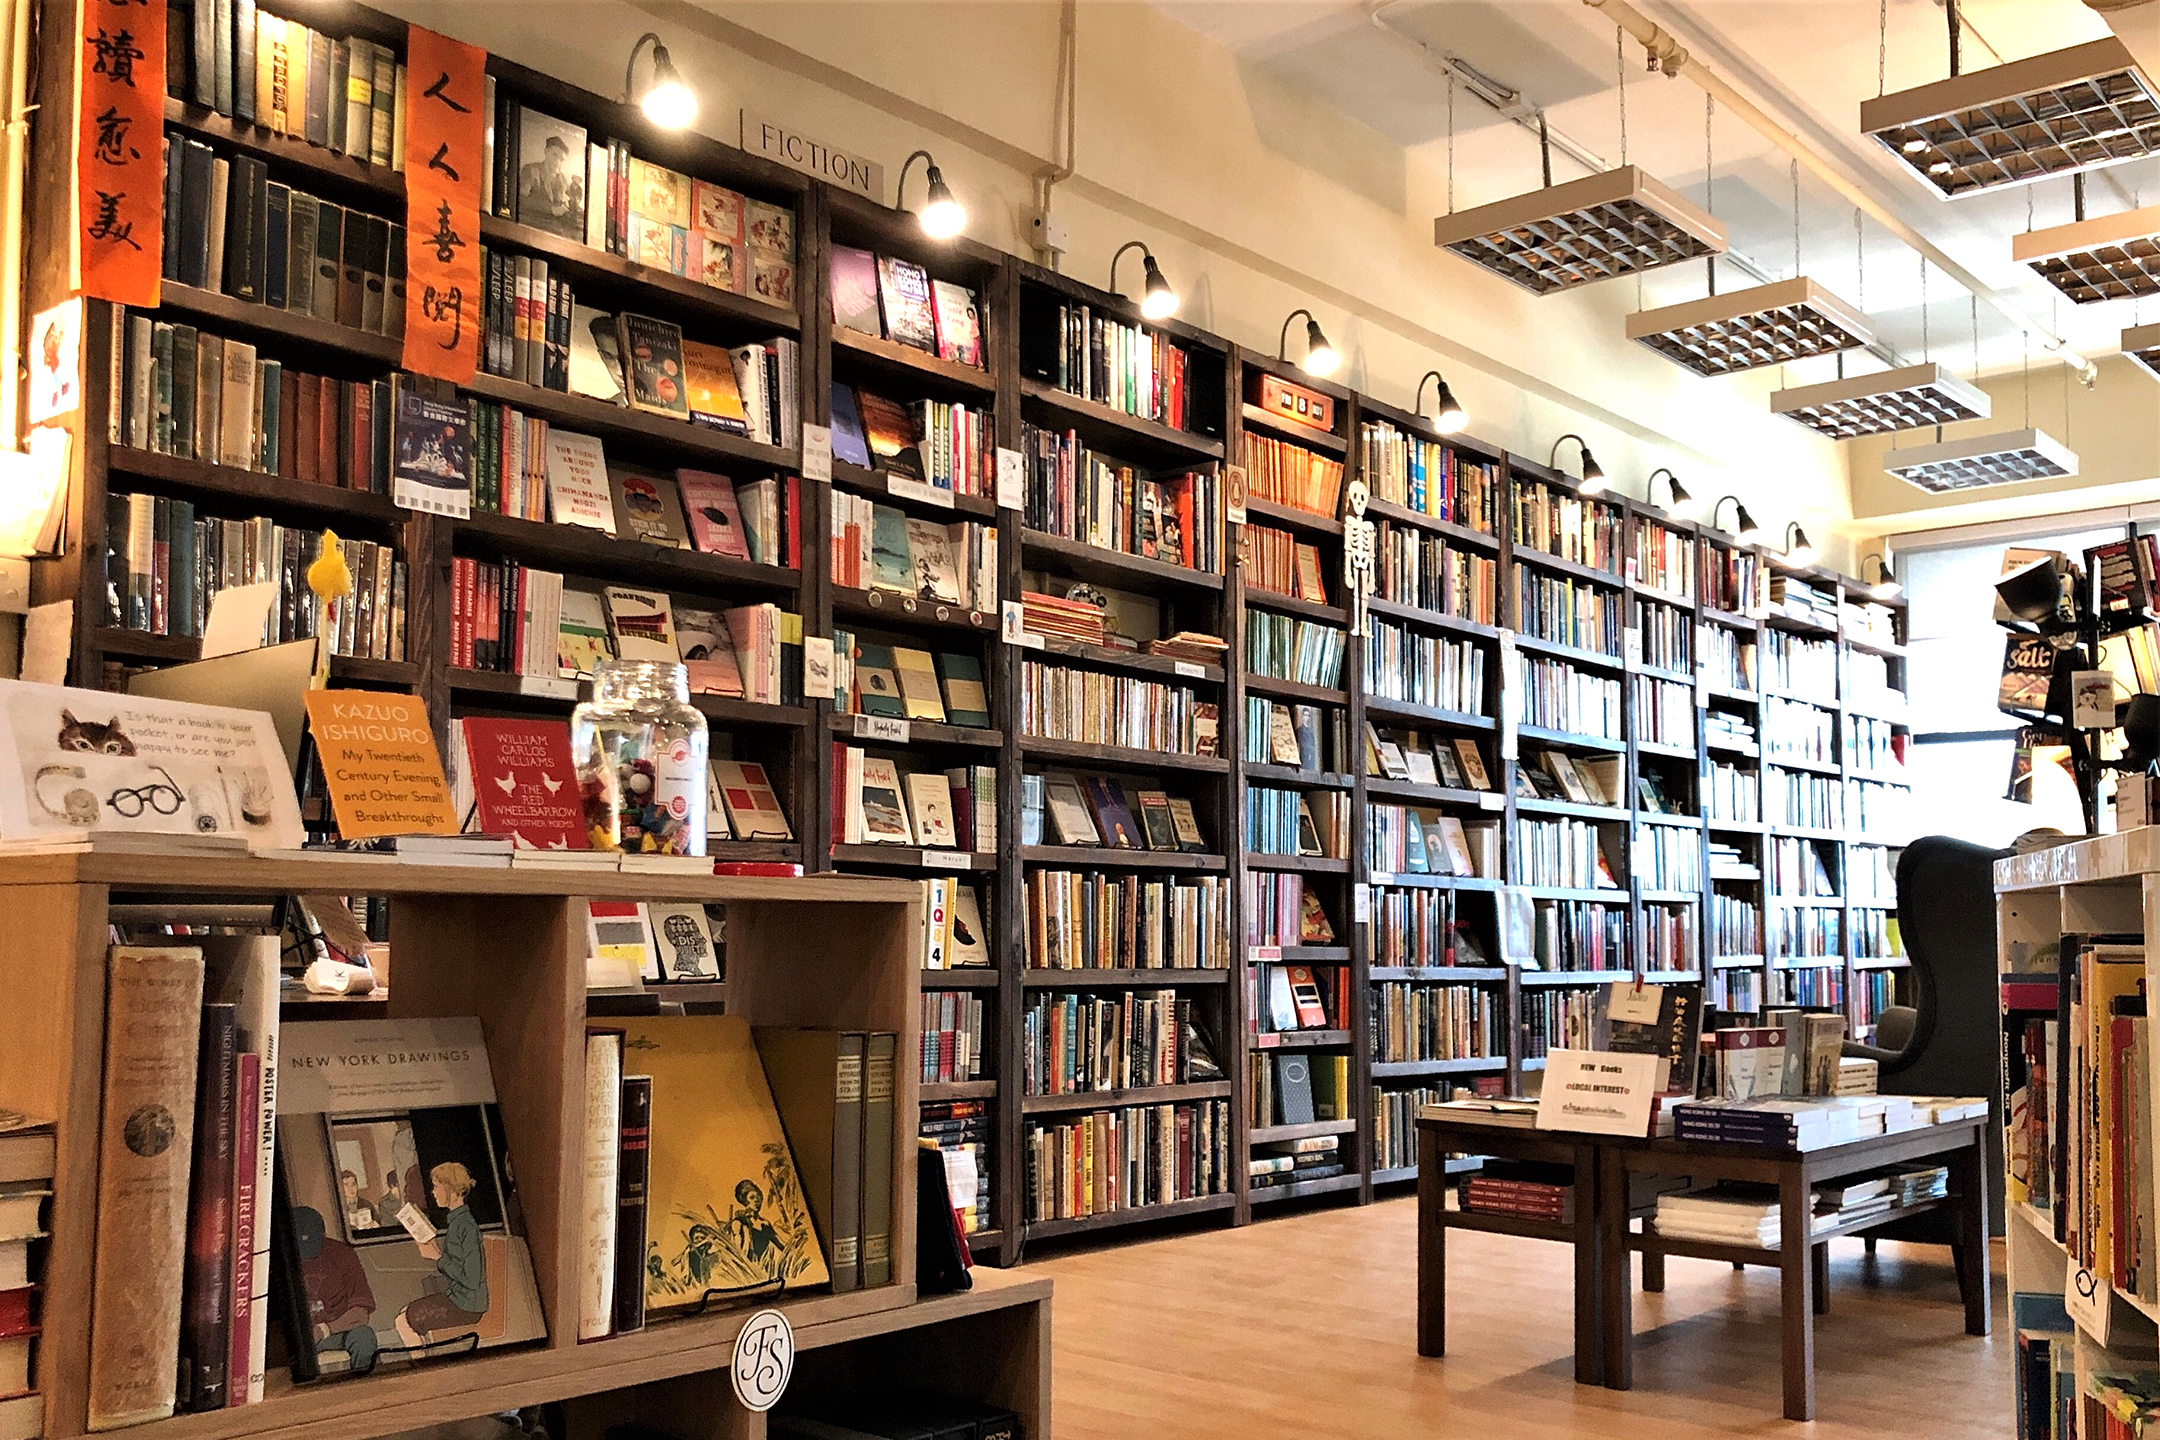 Bleak House Books 清明堂